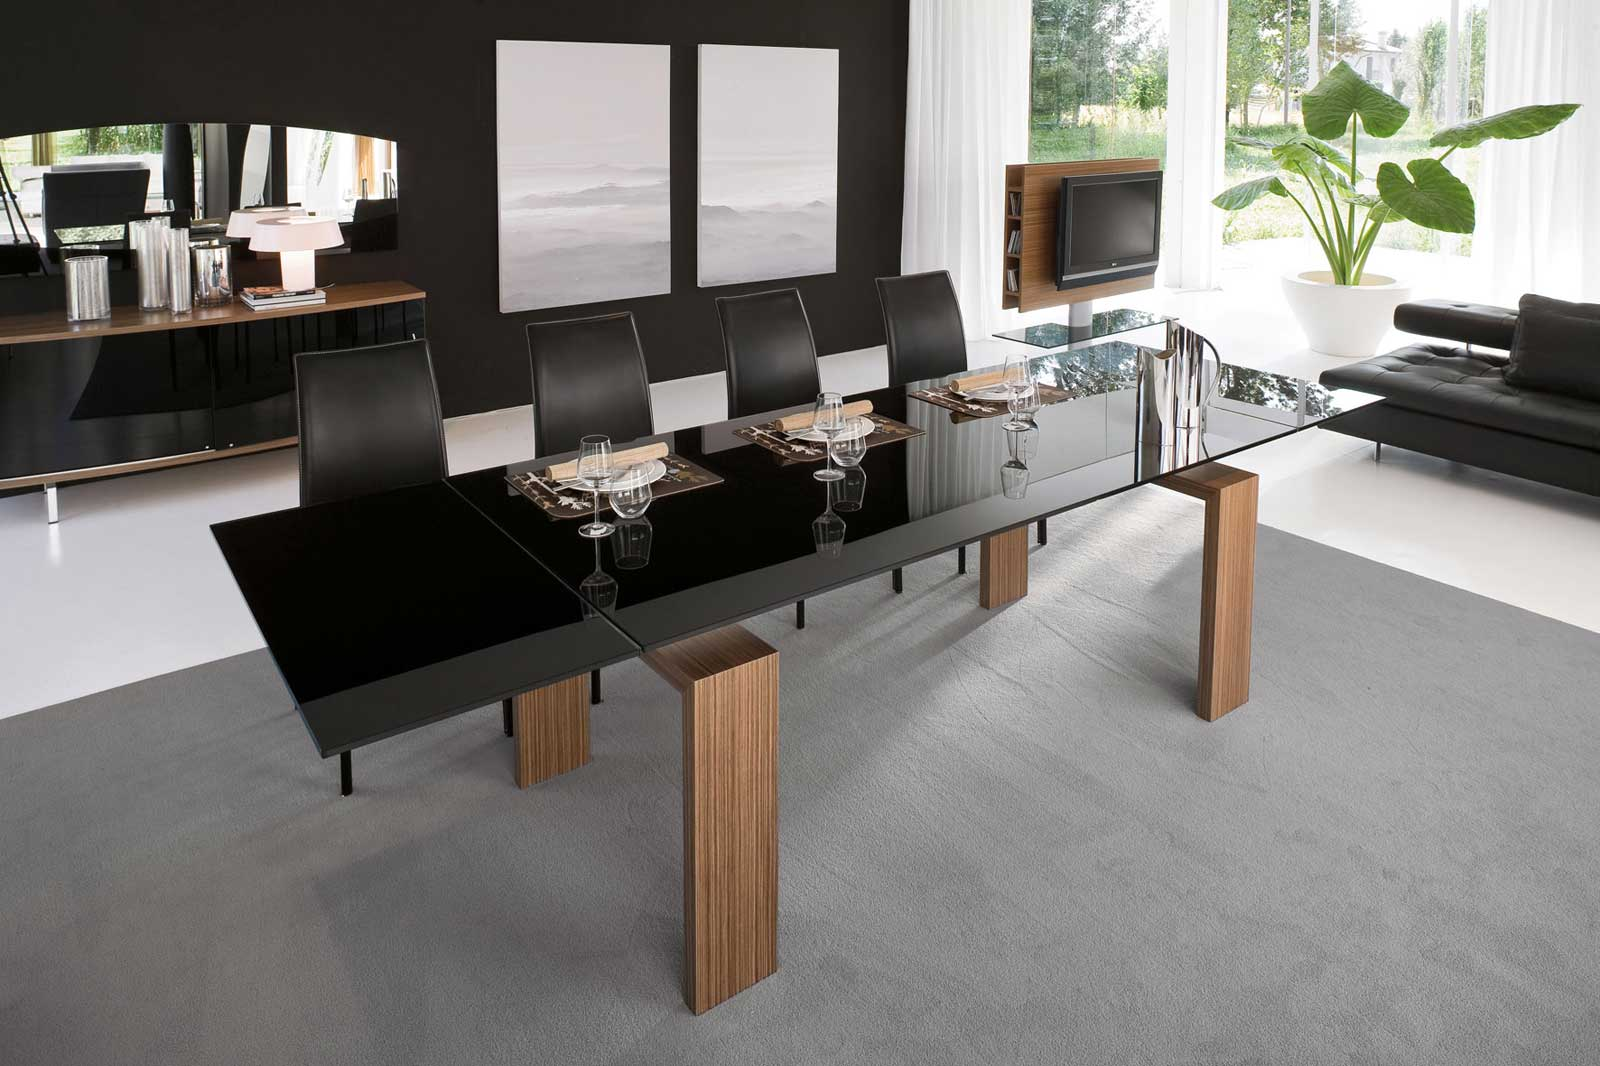 Black Dining Room Furniture (View 1 of 11)